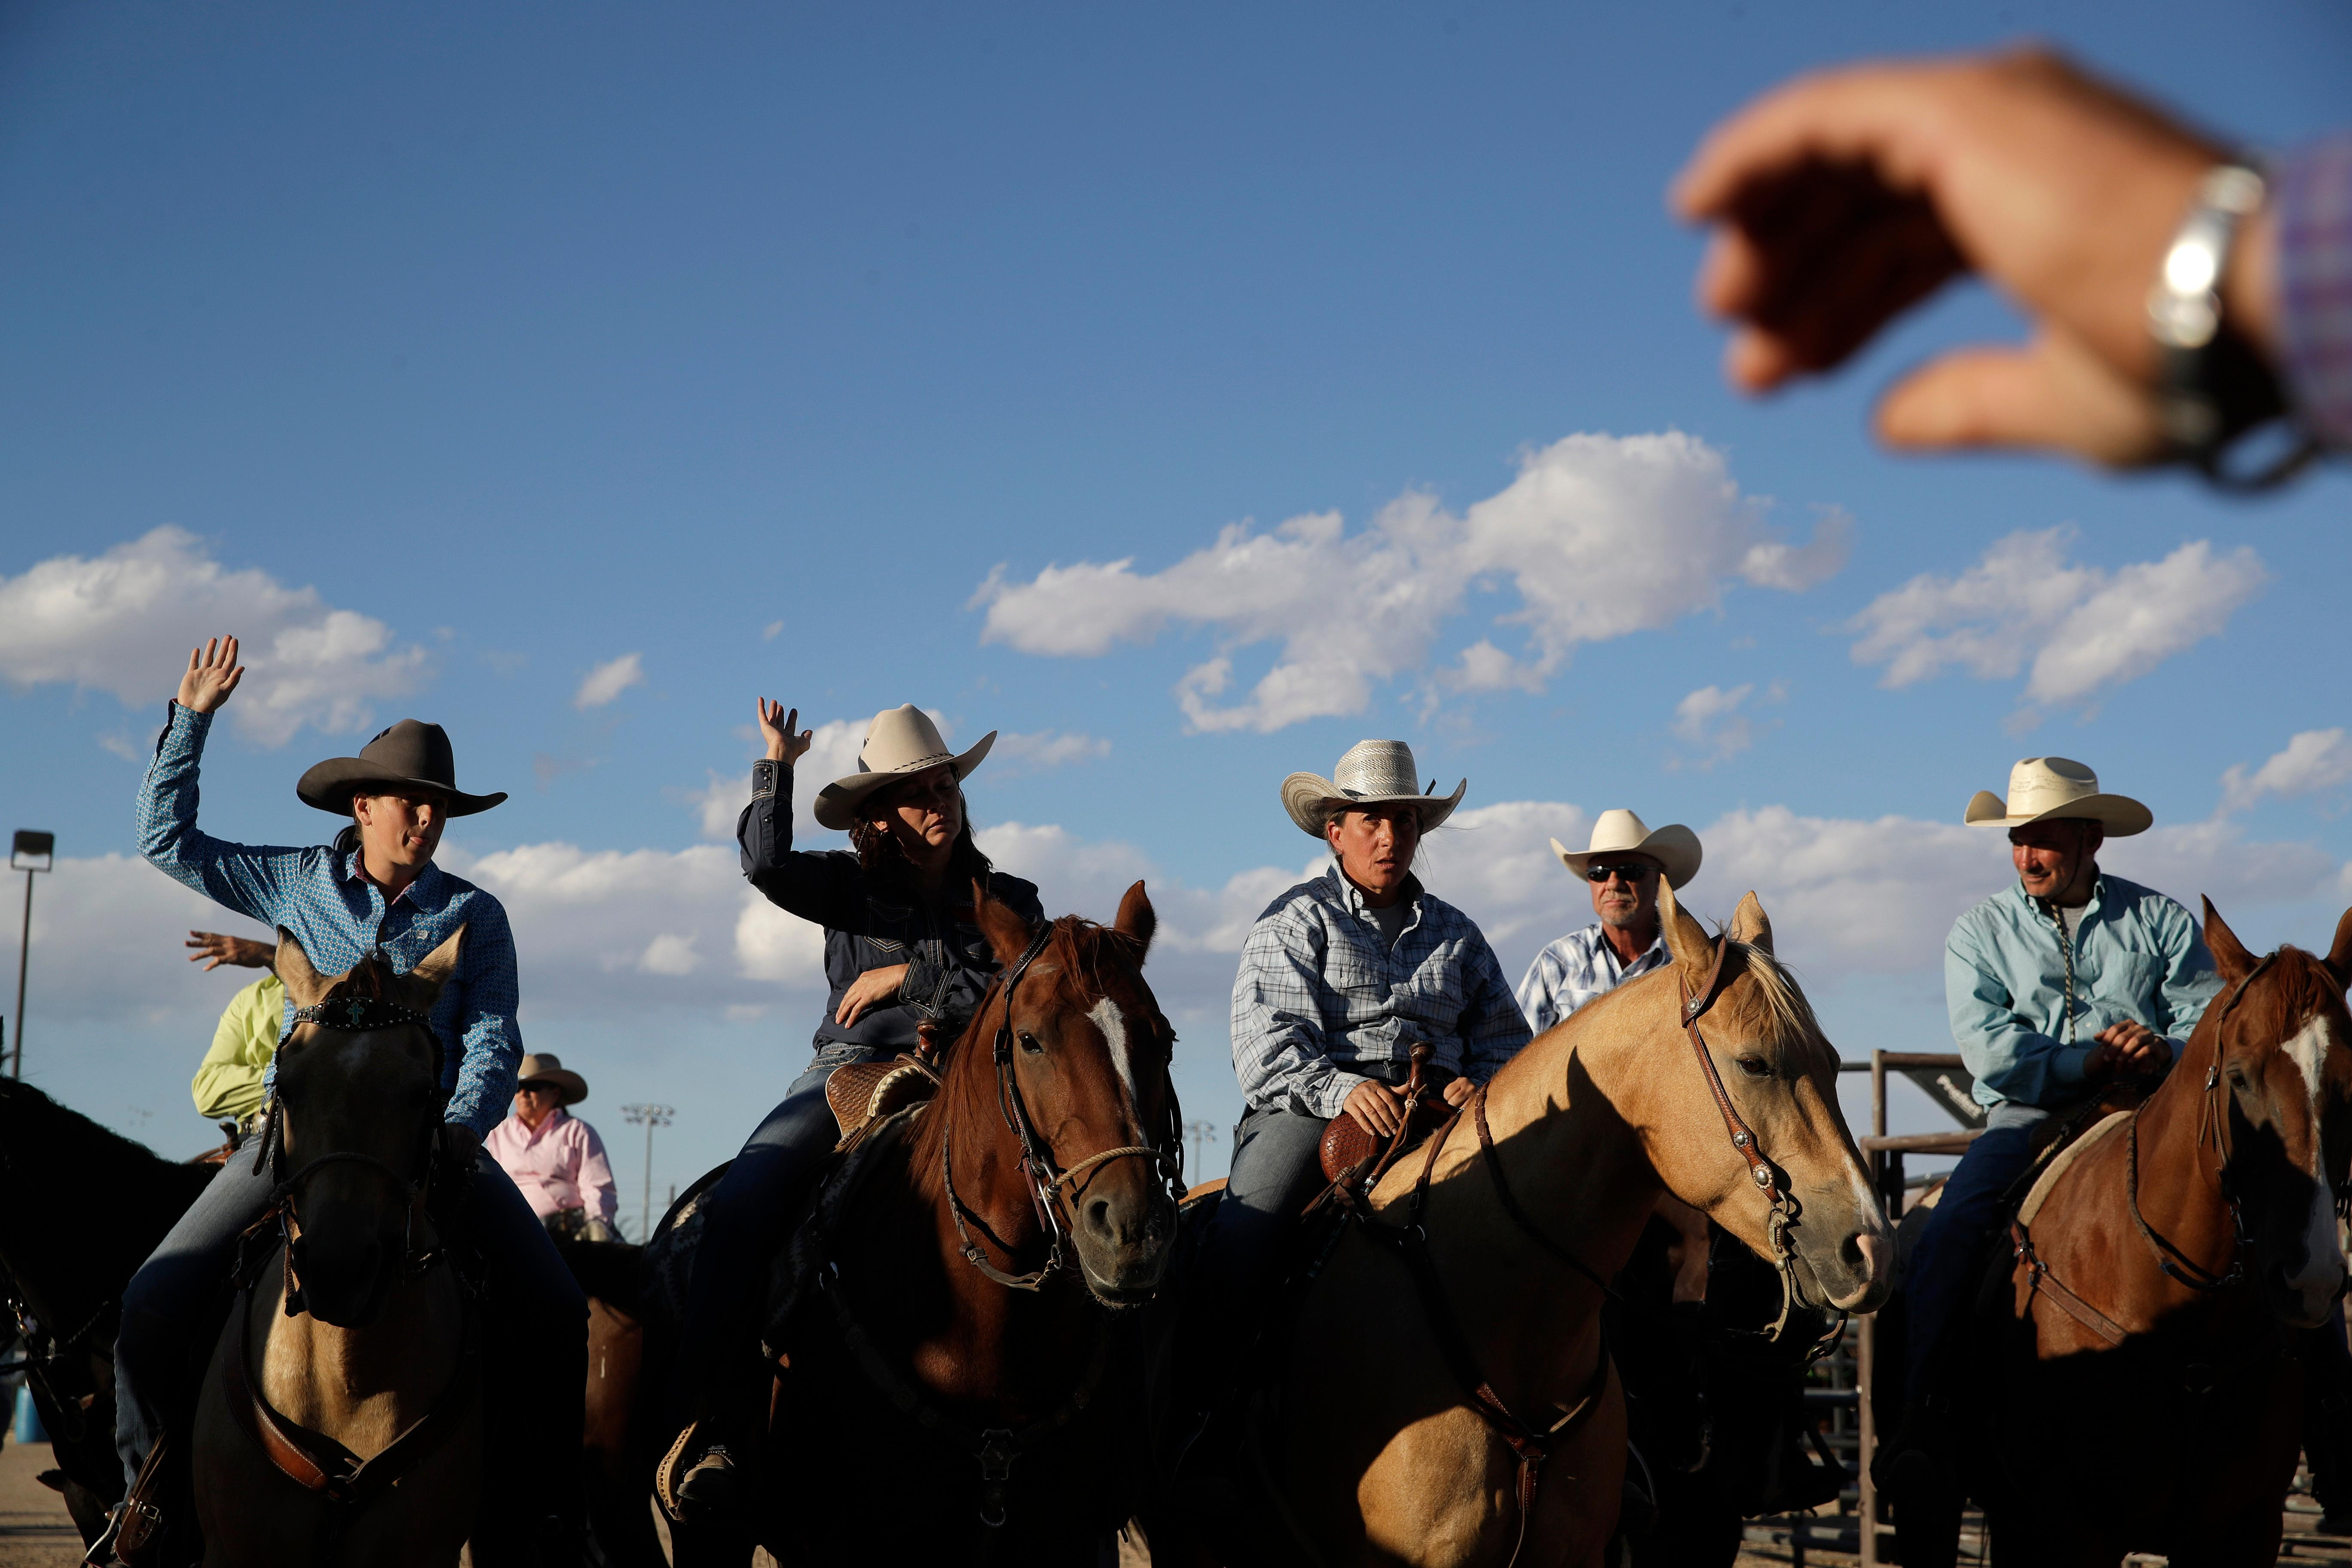 In this Sept. 23, 2017, photo, competitors prepare to compete in the barrel racing event at the Bighorn Rodeo in Las Vegas. Unlike traditional rodeos, both men and women can compete in any of the events. (AP Photo/John Locher)